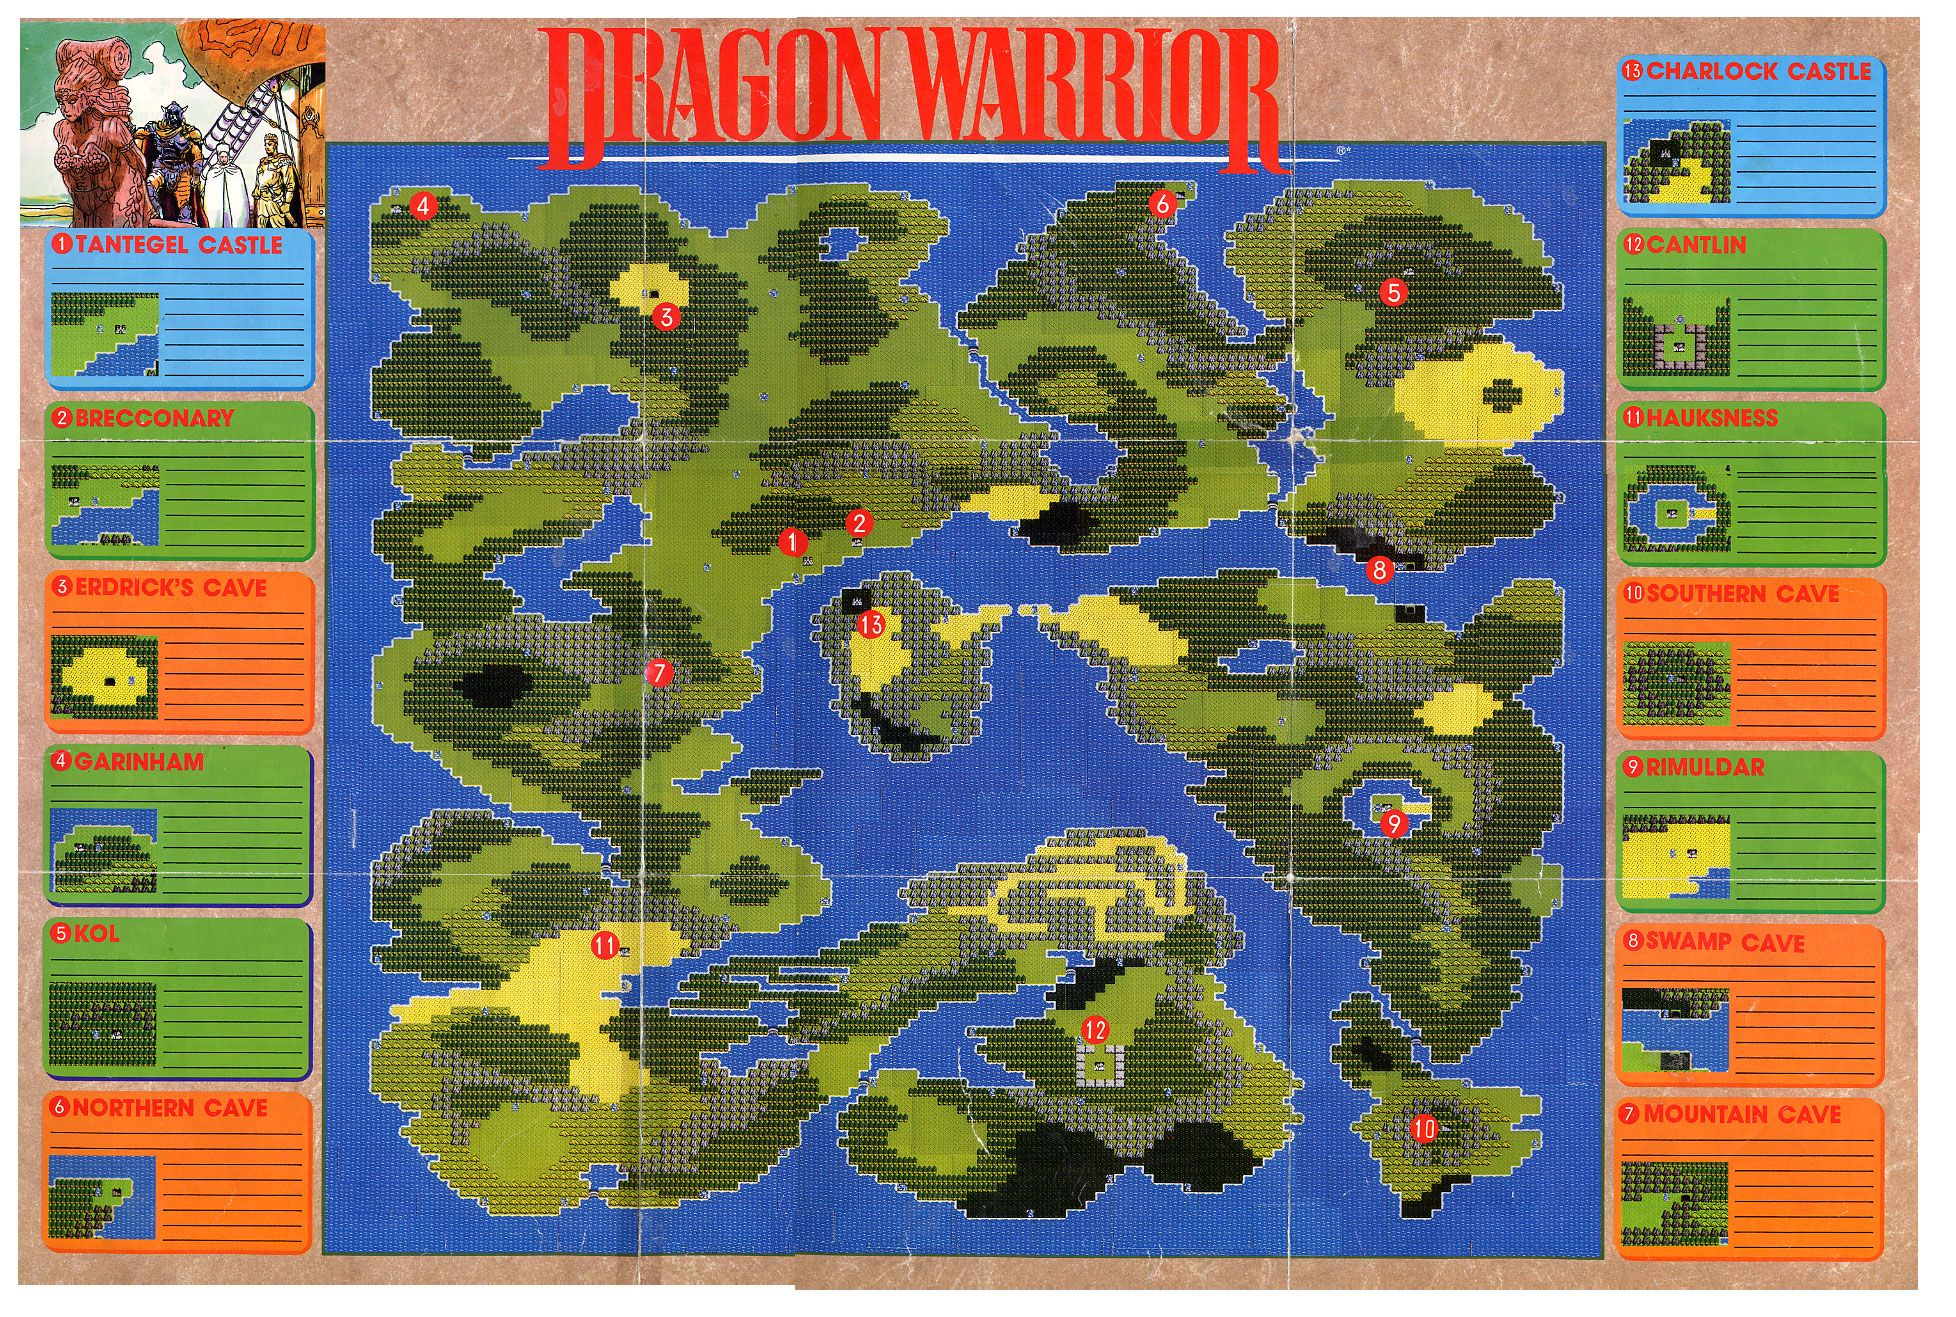 dragon warrior world map | Dragon warrior, Graphic card, Warrior on dragon quest viii world map, dragon quest xi, dragon quest wii, dragon quest 2 map, mario 1 map, dq9 item map, dragon mountain map, donkey kong country 1 map, jurassic park 1 map, dragon quest poster, dragon quest swords, dungeon cave map, dragon quest viii treasure map, dragon quest 4 map, here be dragons map, dragon quest 1 map, dragon tree map, dragon quest psp, dragon quest erdrick,